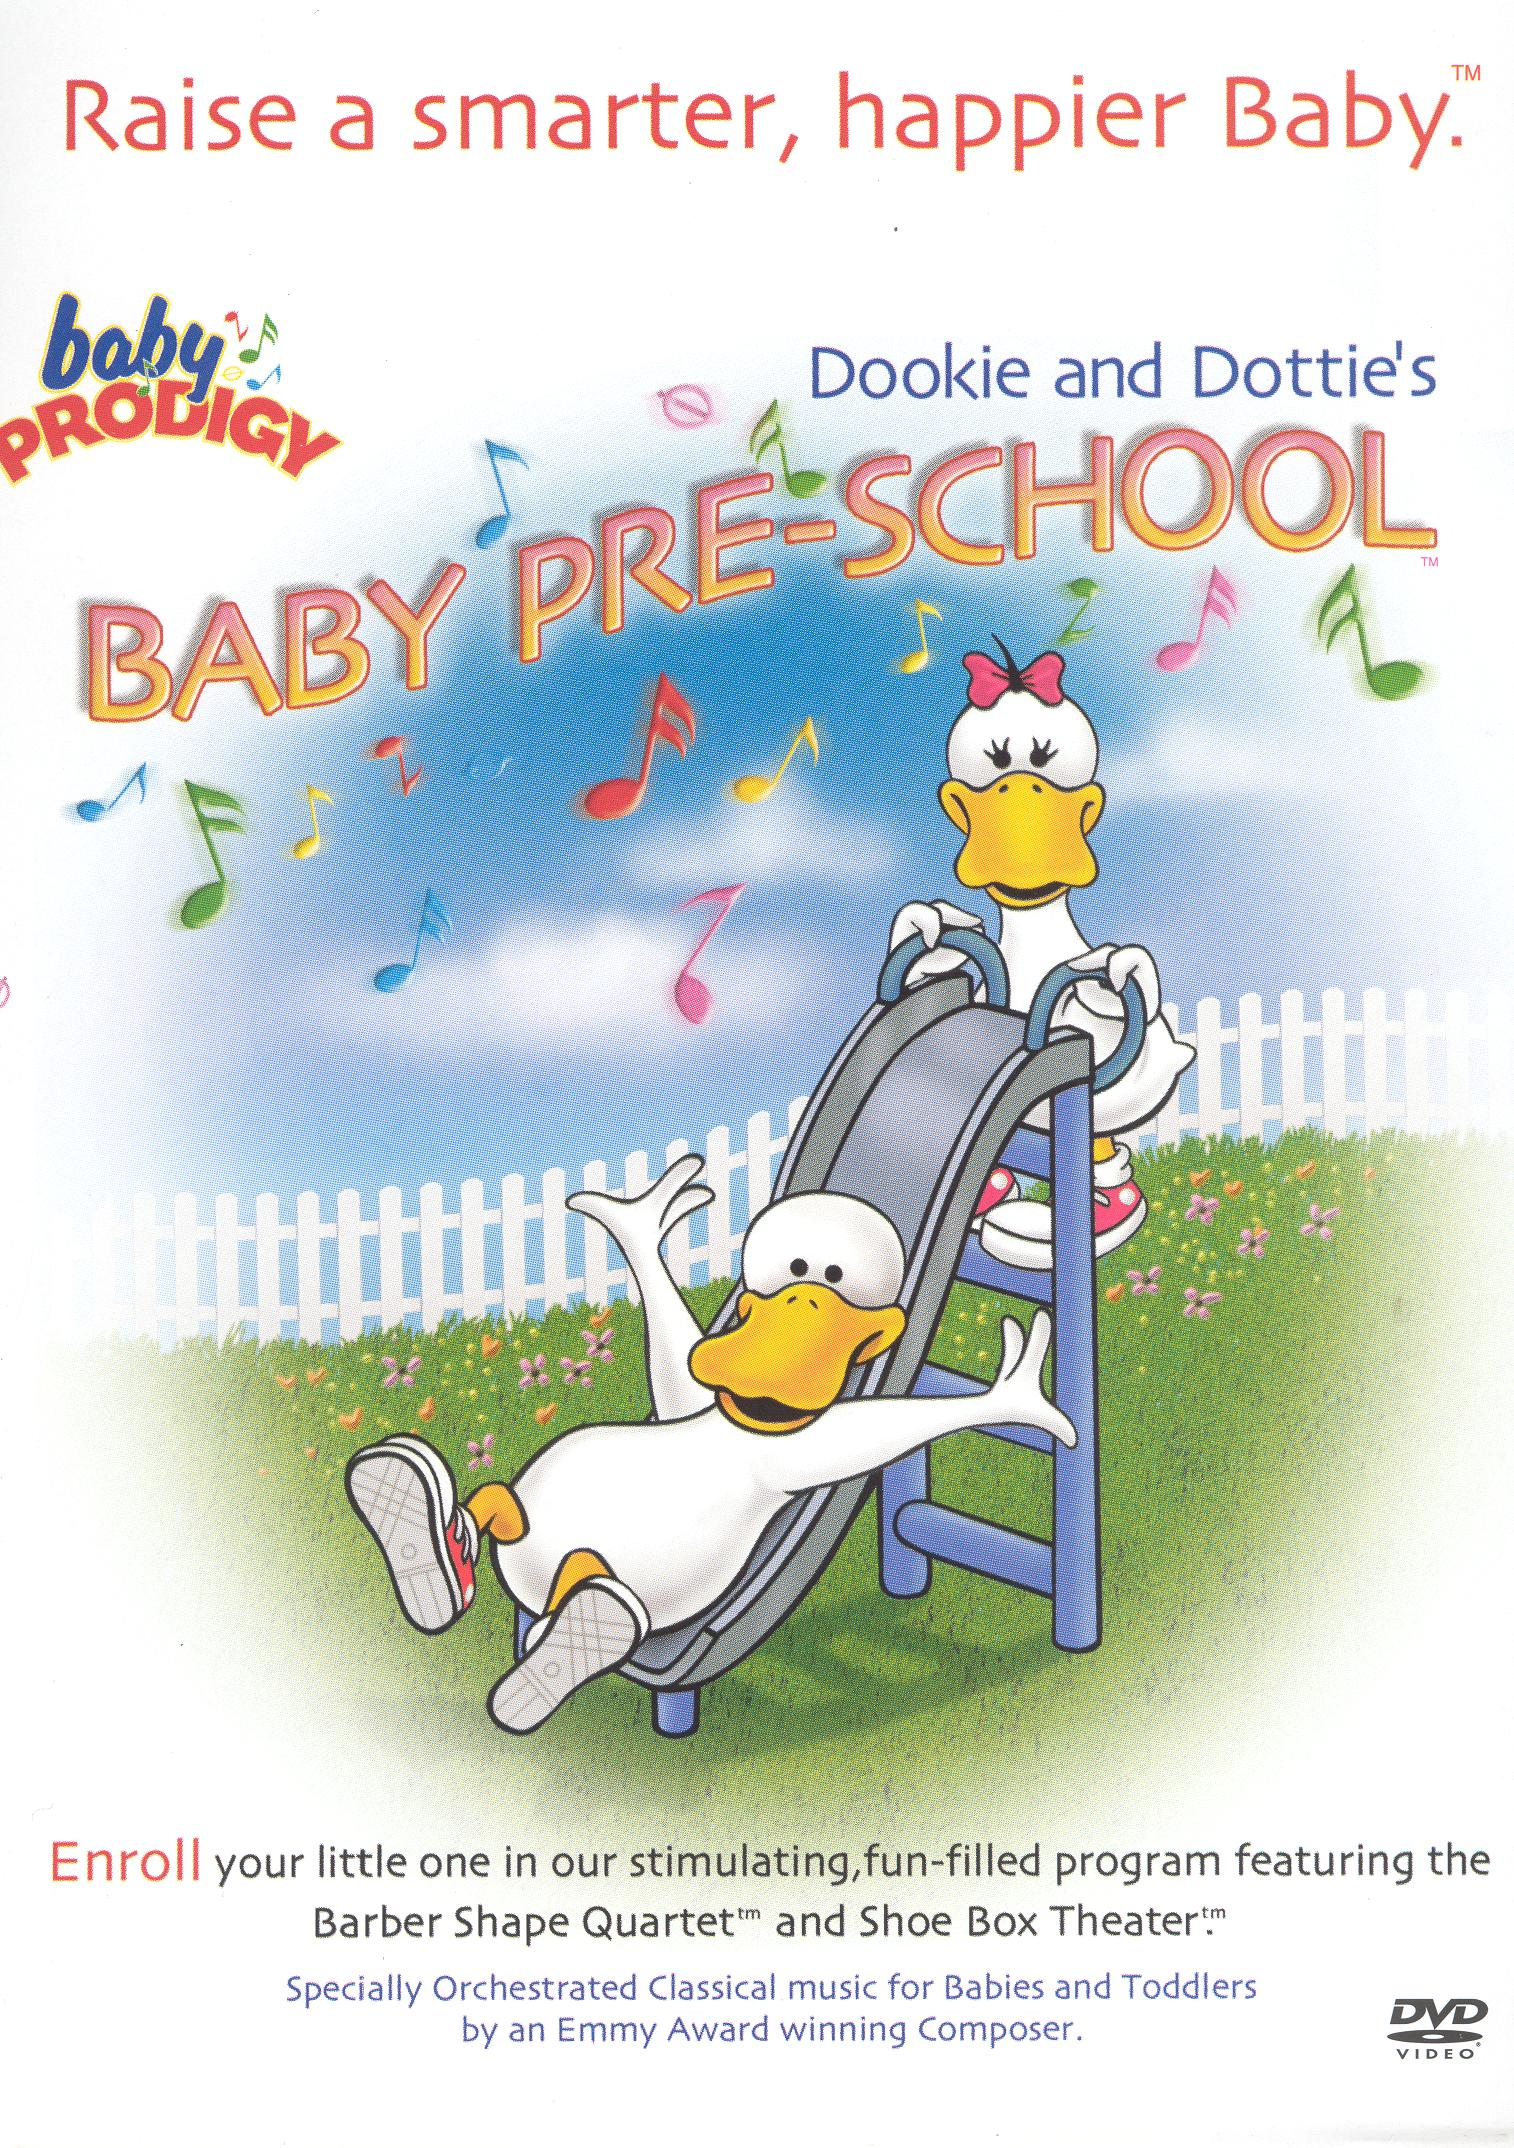 Baby Prodigy: Dookie and Dottie's Baby Pre-School